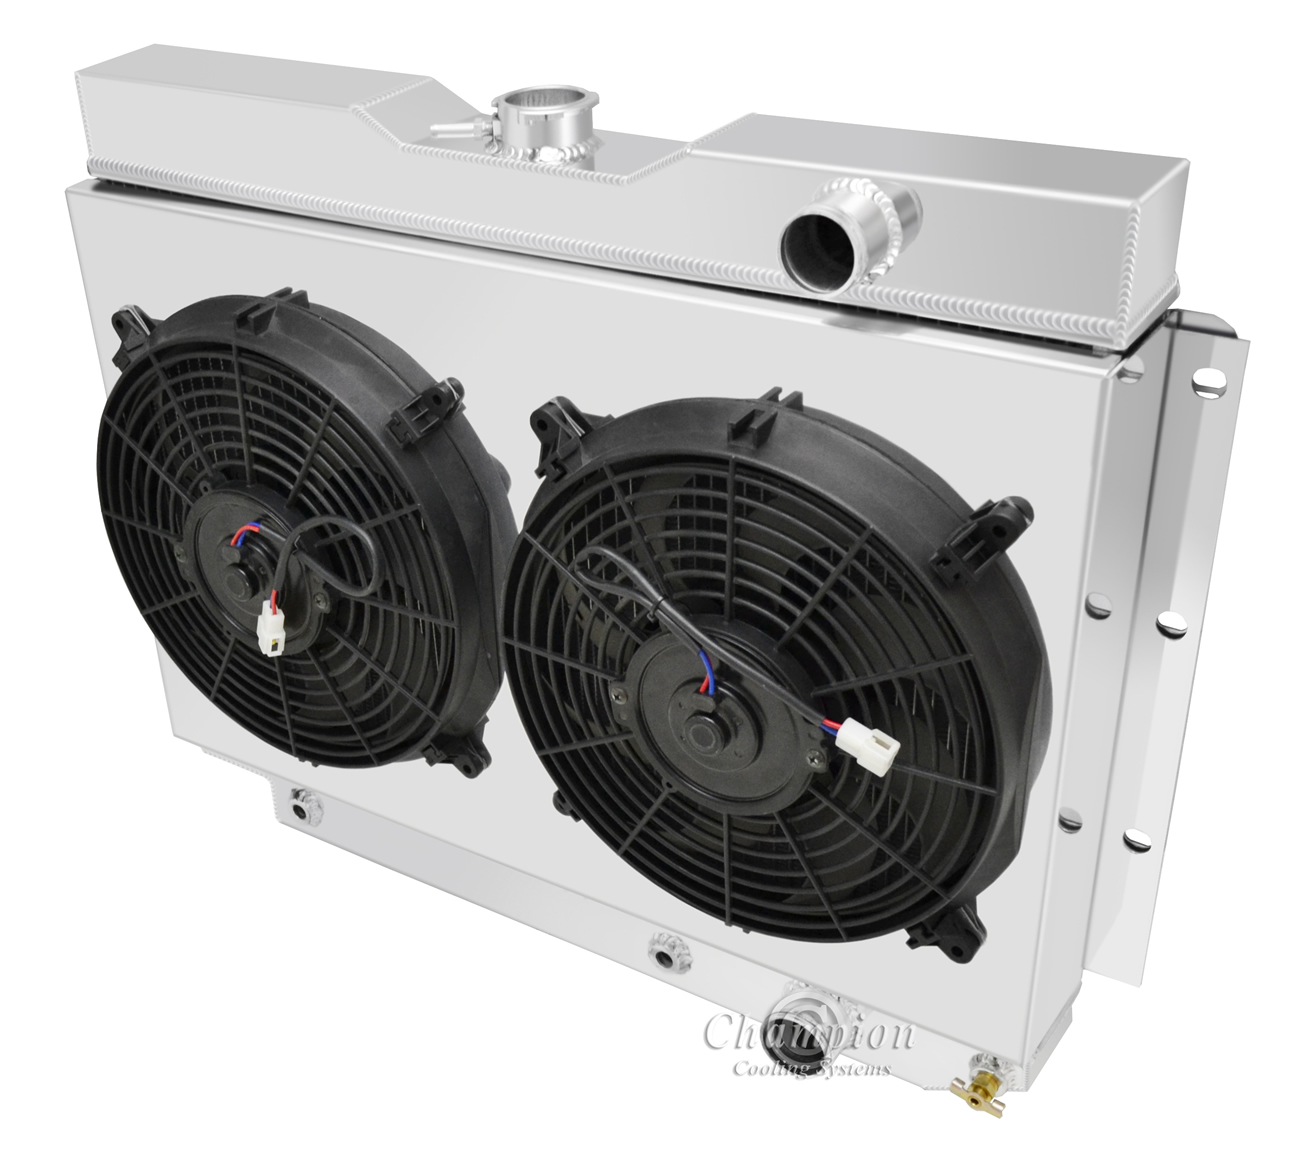 https://www.championcooling.com/photos/Photos%20White/With%20Fans/W-Shroud/281ps/281ps_2fs_a_w_w.jpg